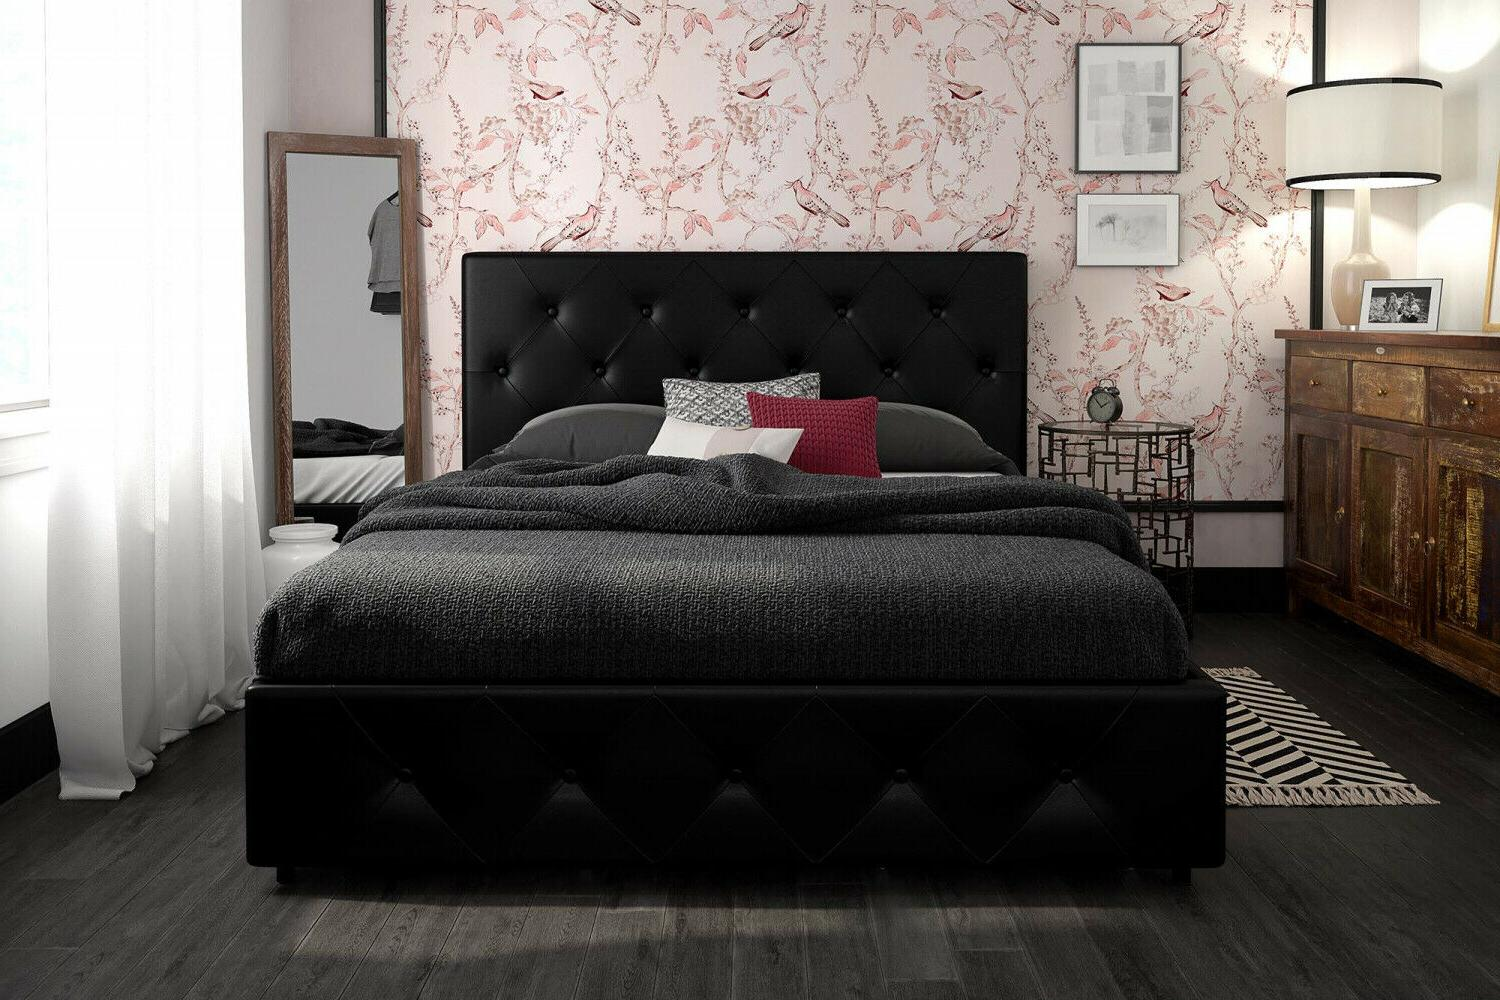 Queen Size With Storage 4 Tufted Black Faux Leather